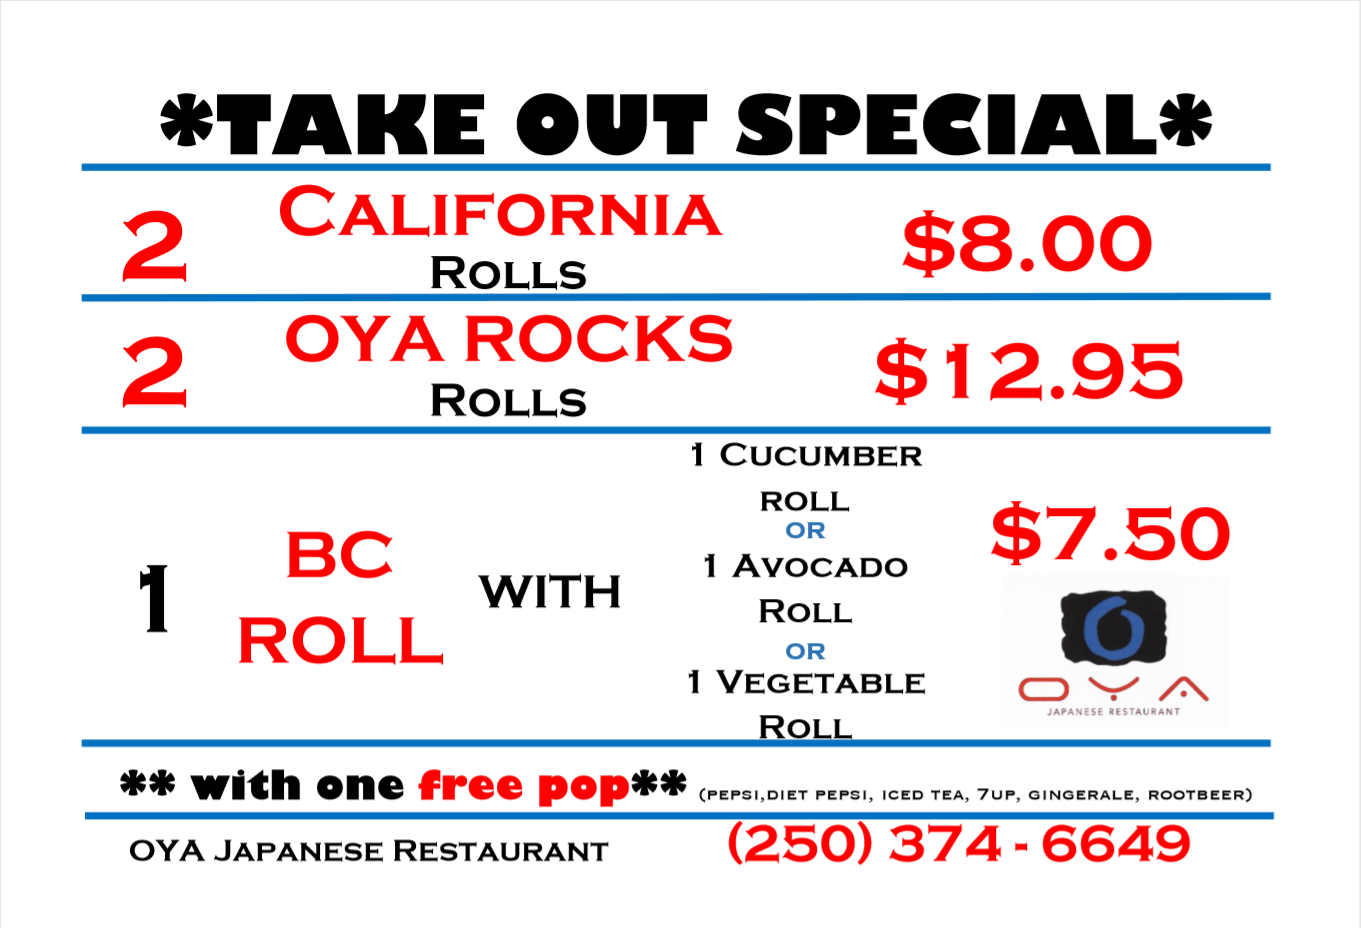 OYA Sushi take out special